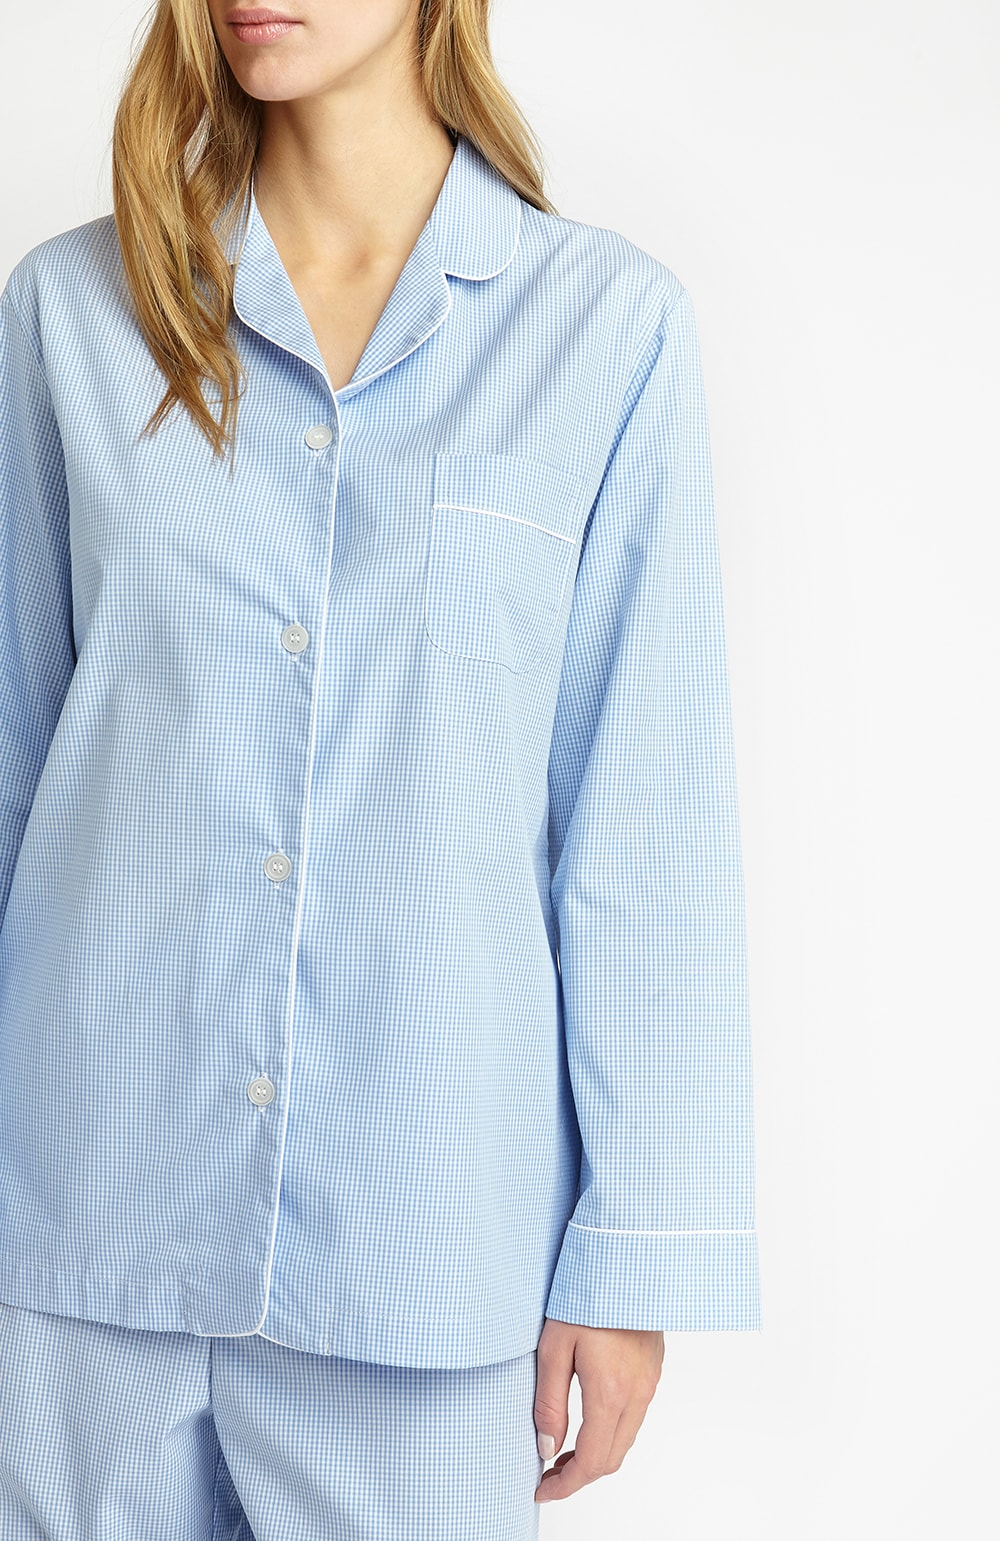 Classic Cotton Sky Gingham Pyjamas | Bonsoir of London